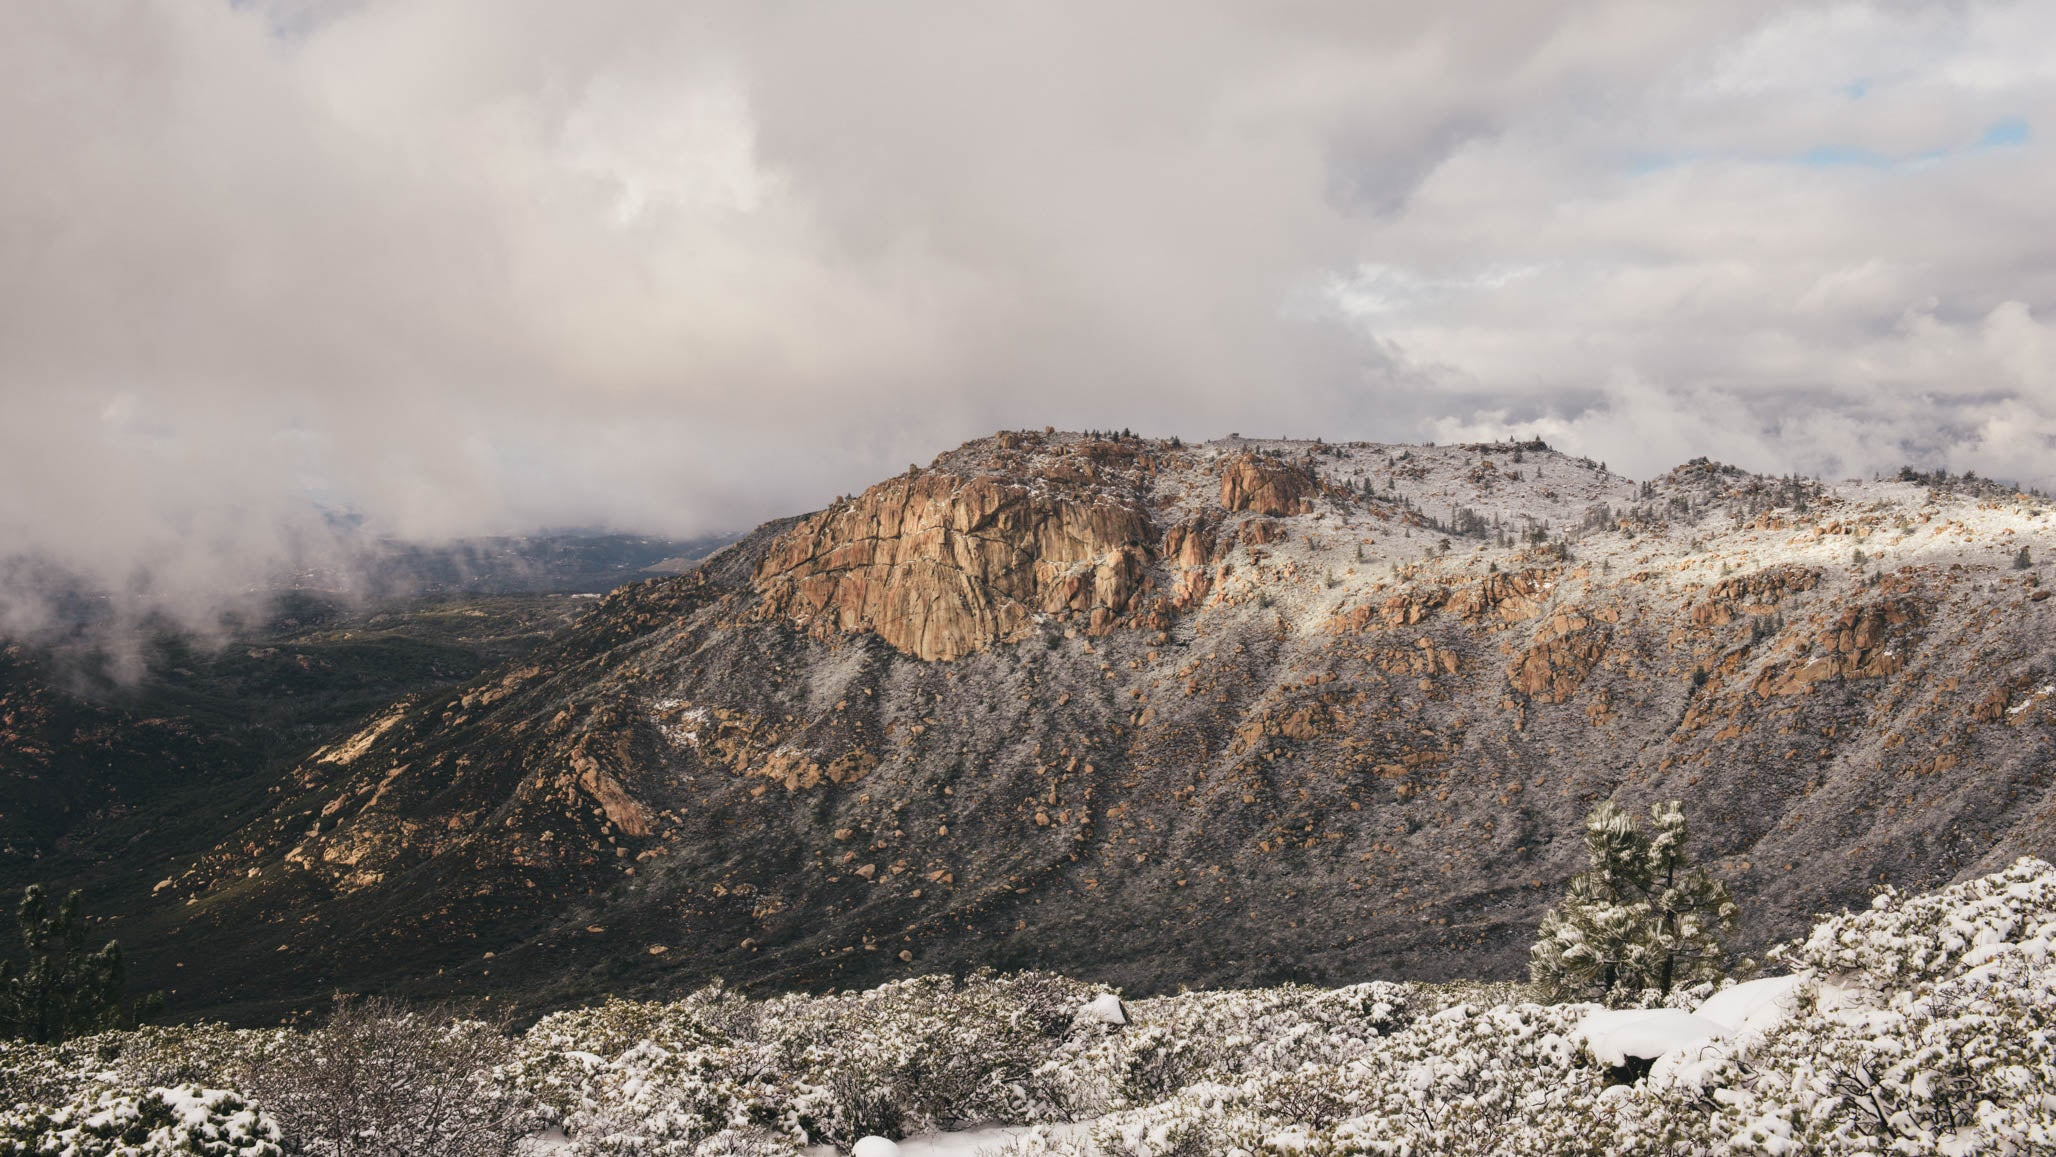 Snow on Corte Madera Mountain and Corral Canyon in the Cleveland National Forest in San Diego